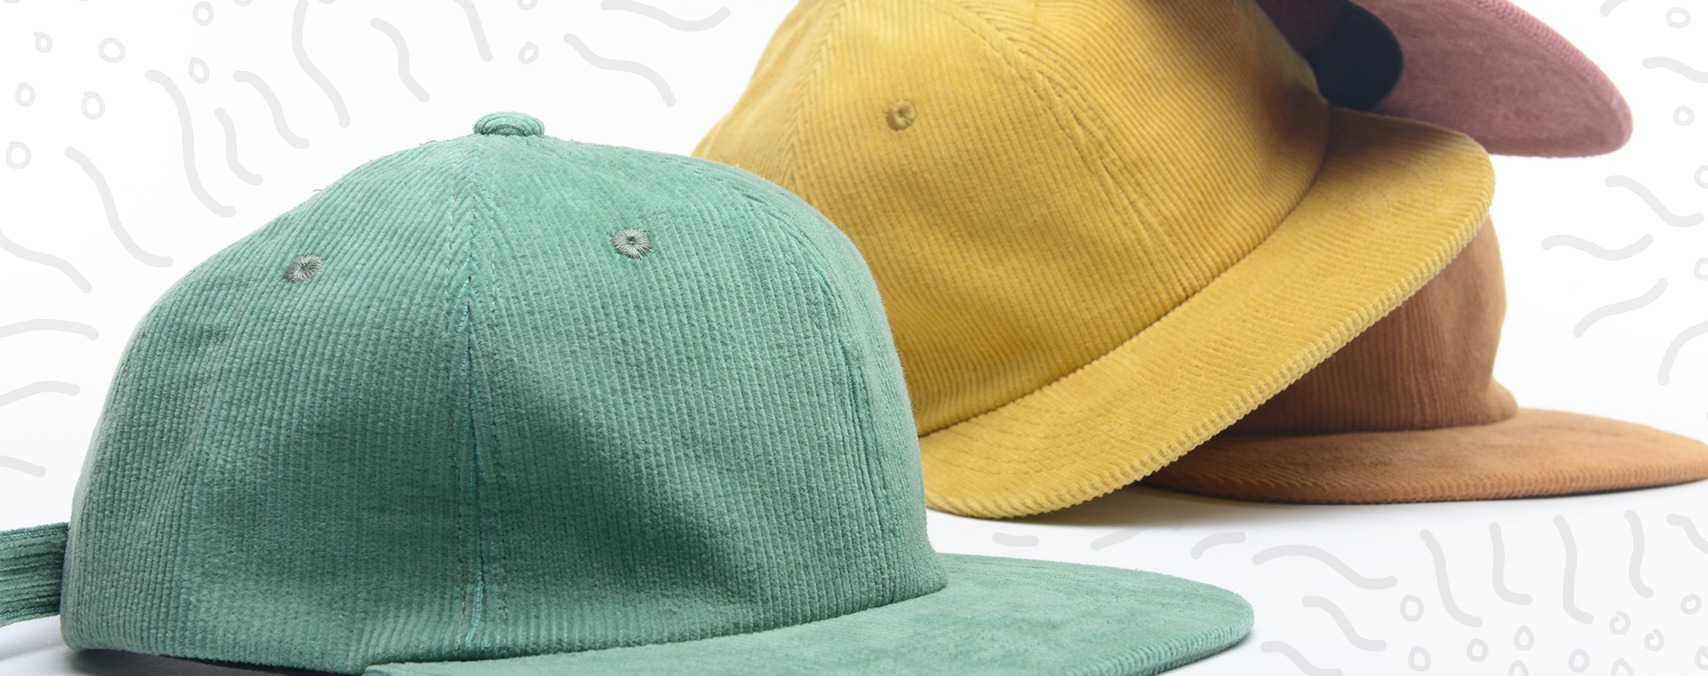 8faf0188342 Delusion MFG - 5 Panel Hats